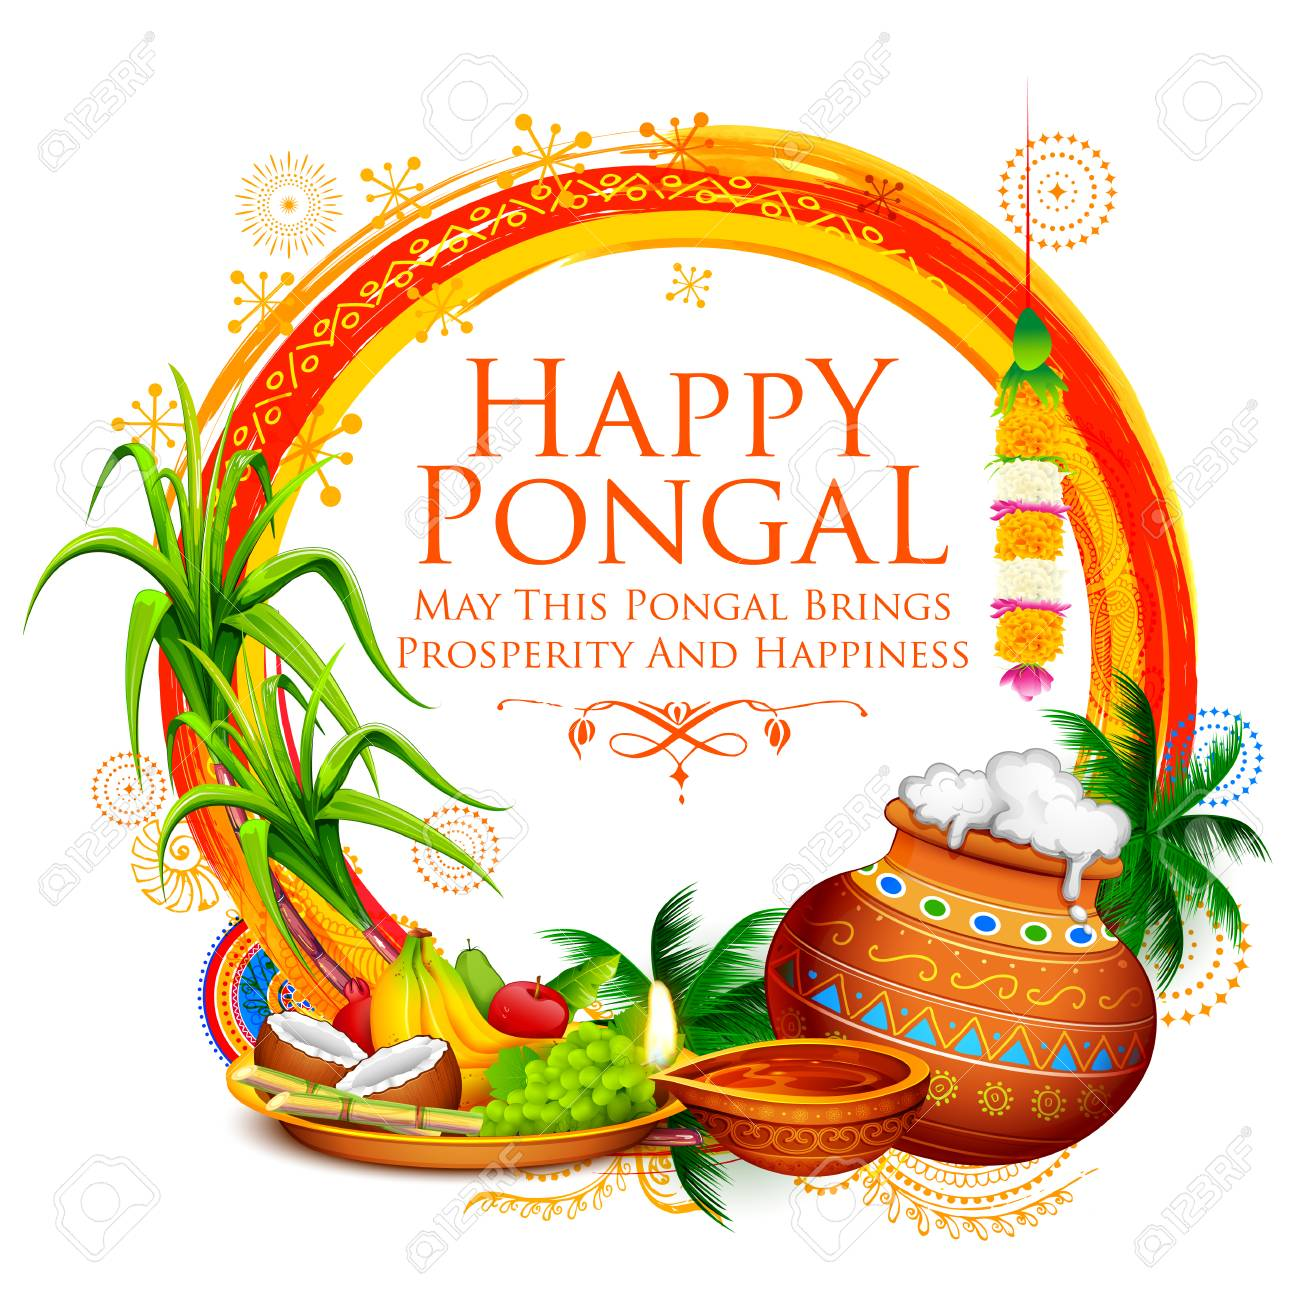 Happy Pongal holiday harvest festival of Tamil Nadu, South India greeting background. - 90909959